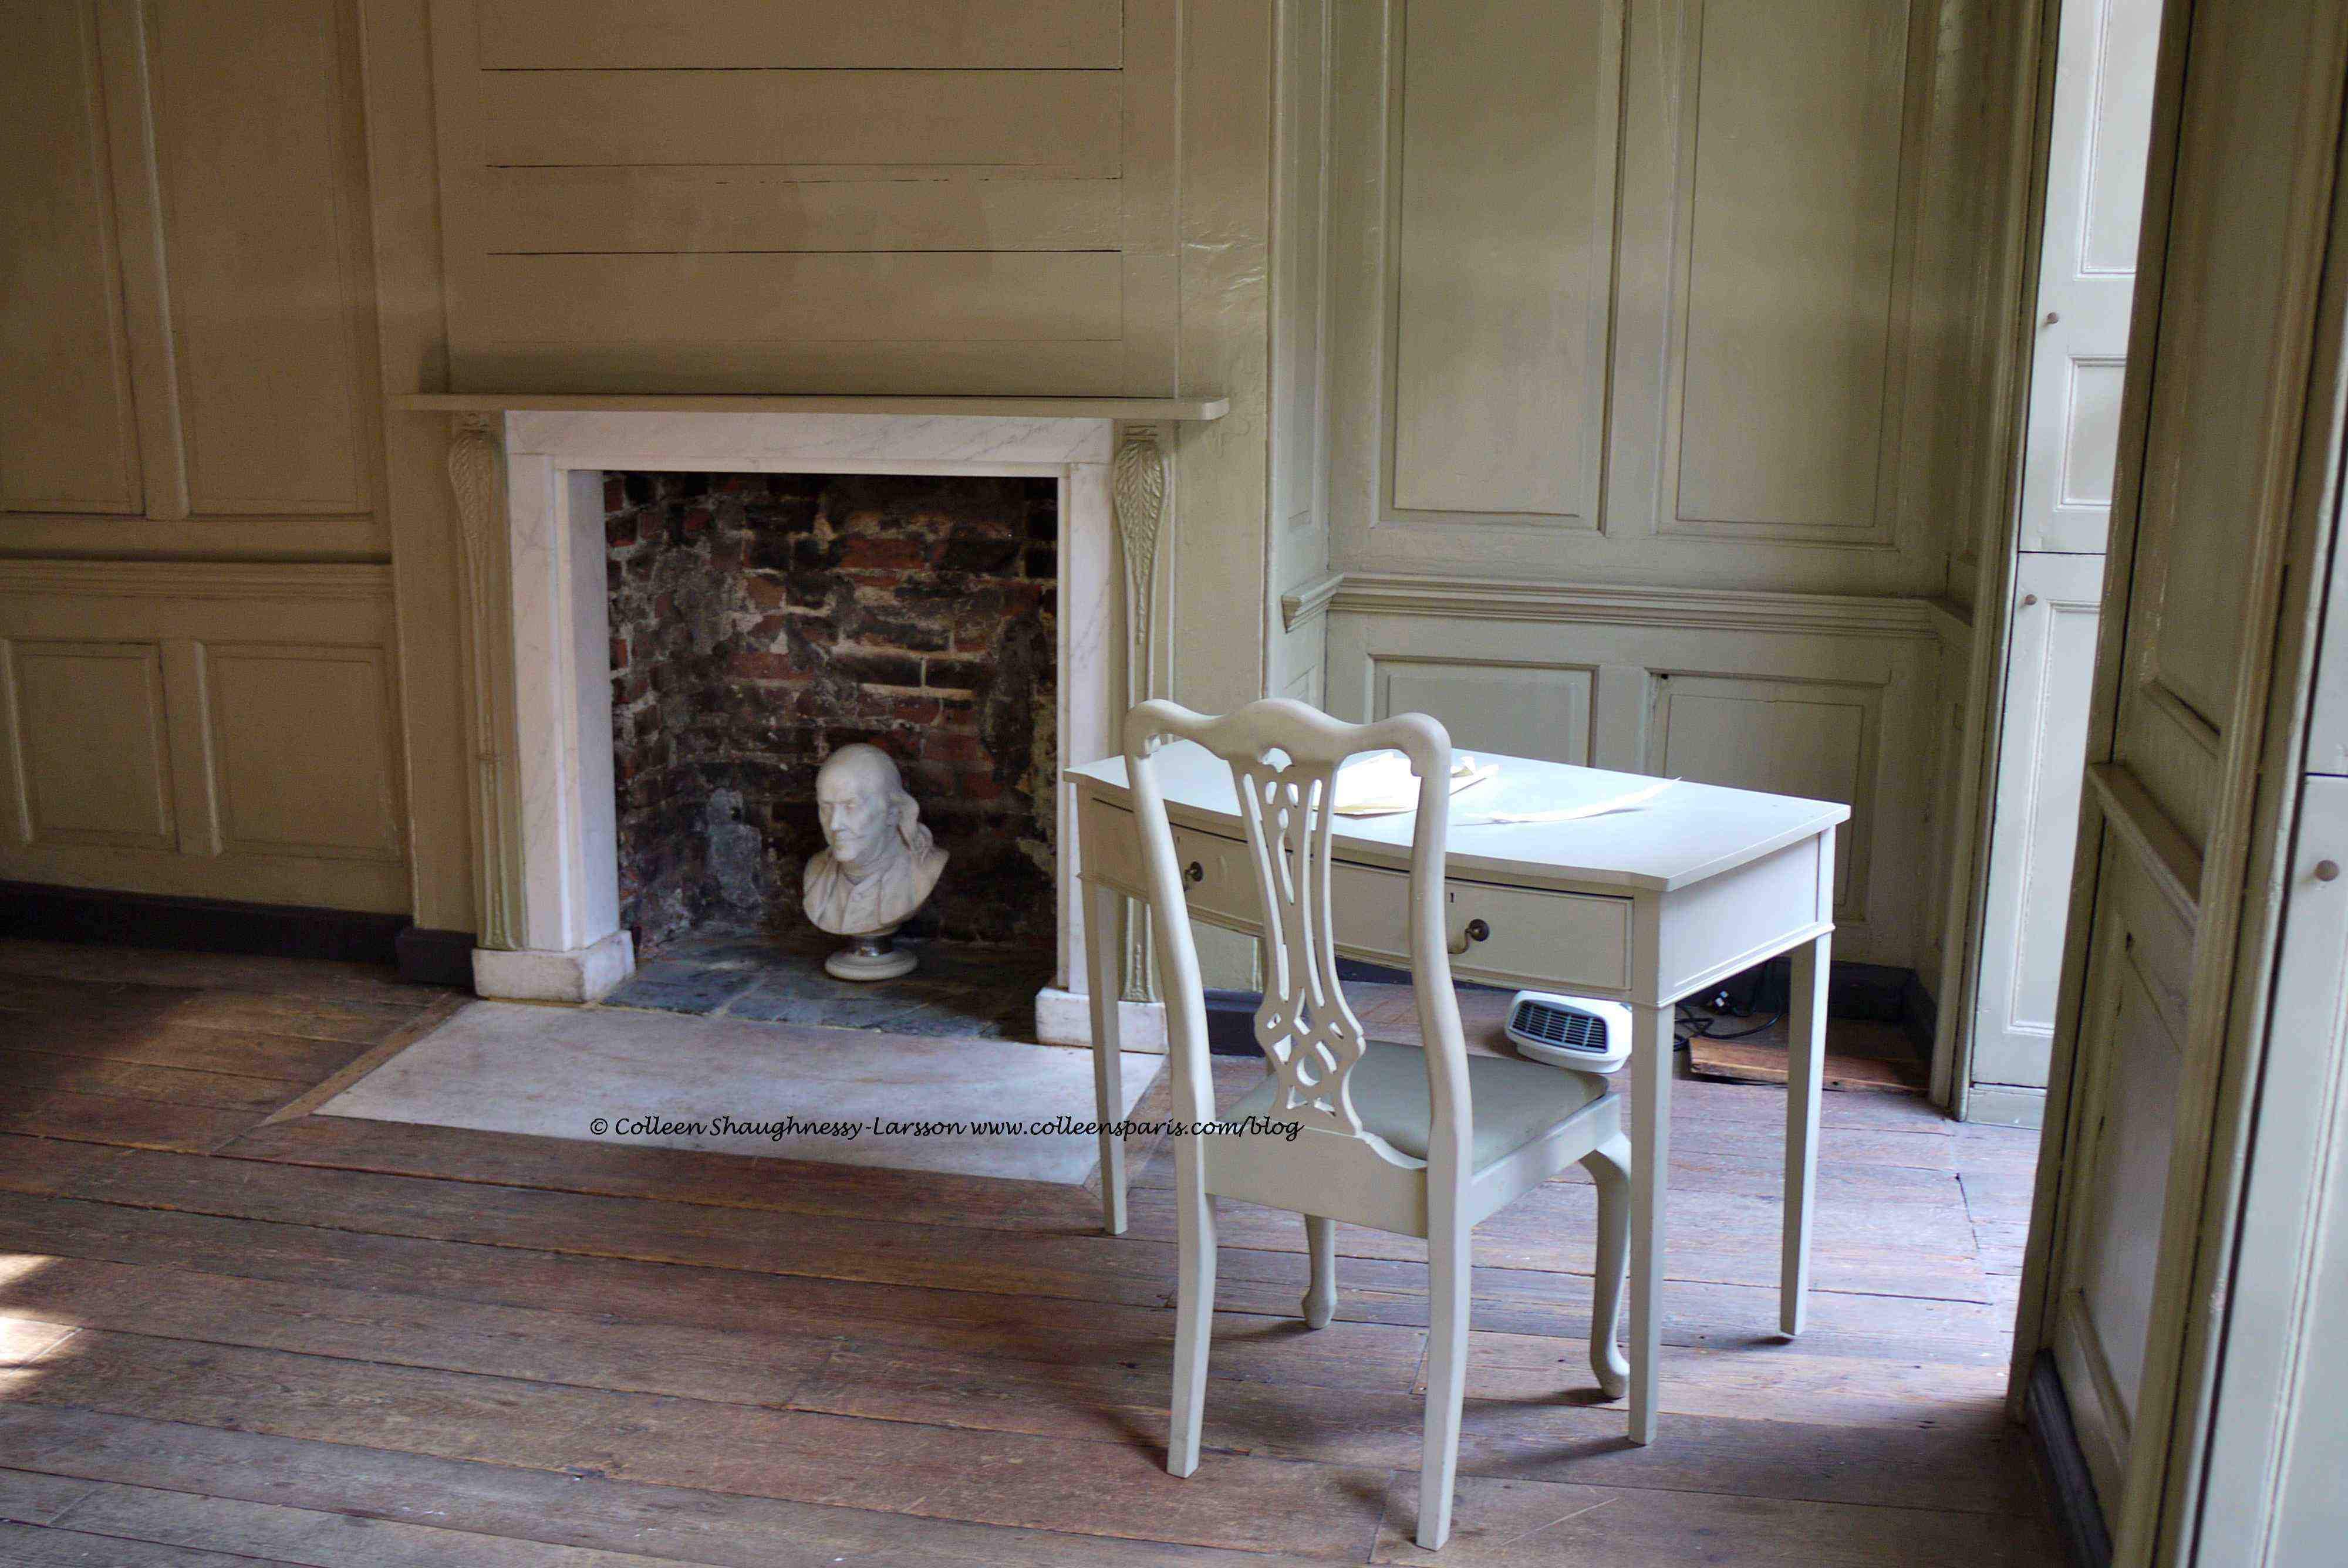 long weekend in london hidden houses and pubs colleen s paris benjamin franklin house london his front room for